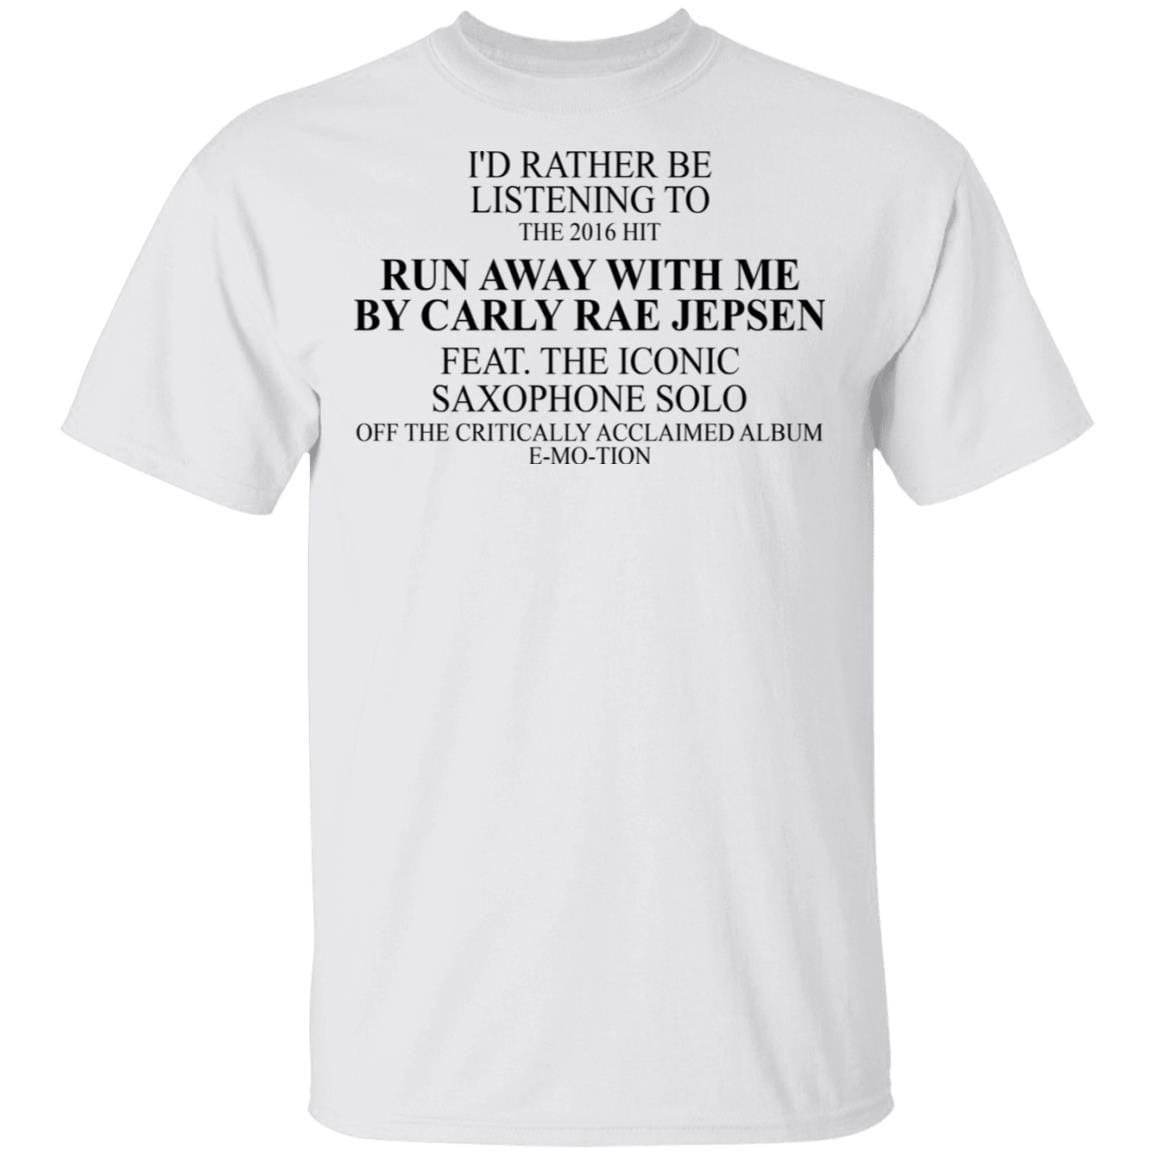 I'd Rather Be Listening To The 2016 Hit Run Away With Me By Carly Rae Jepsen T-Shirts, Hoodies 1049-9974-88767630-48300 - Tee Ript